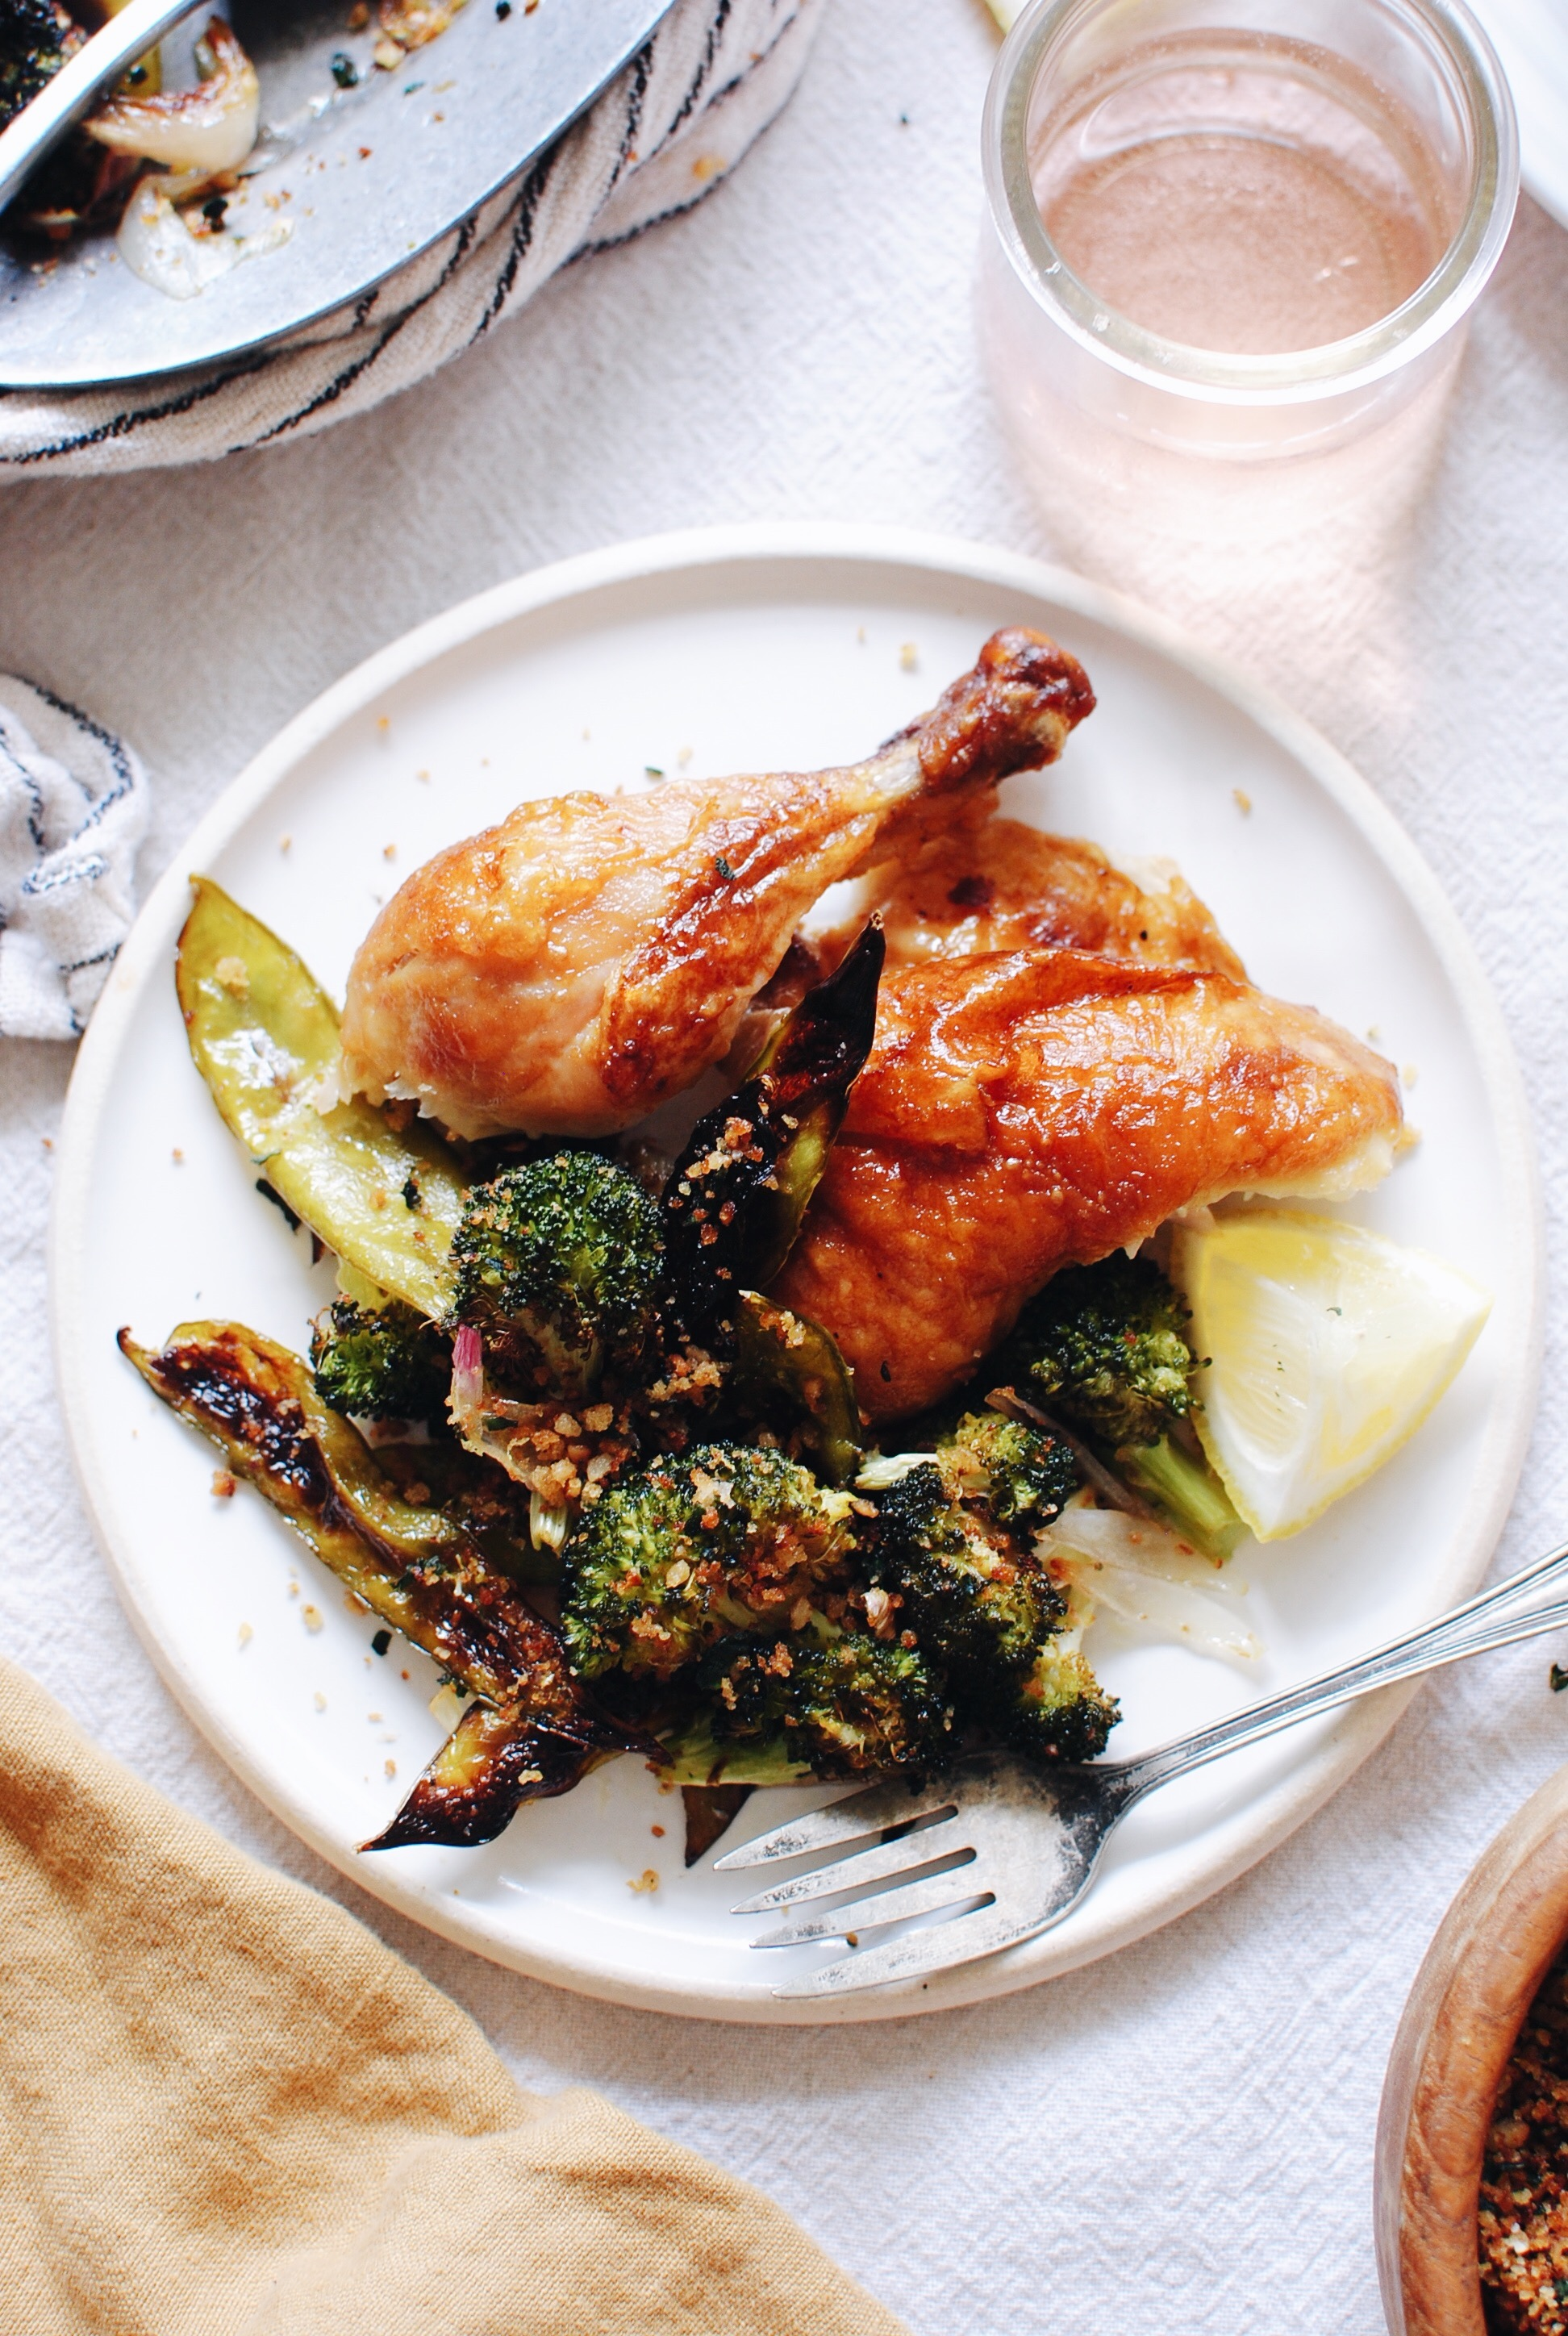 Roasted Broccoli and Snow Peas with Garden Breadcrumbs / Bev Cooks